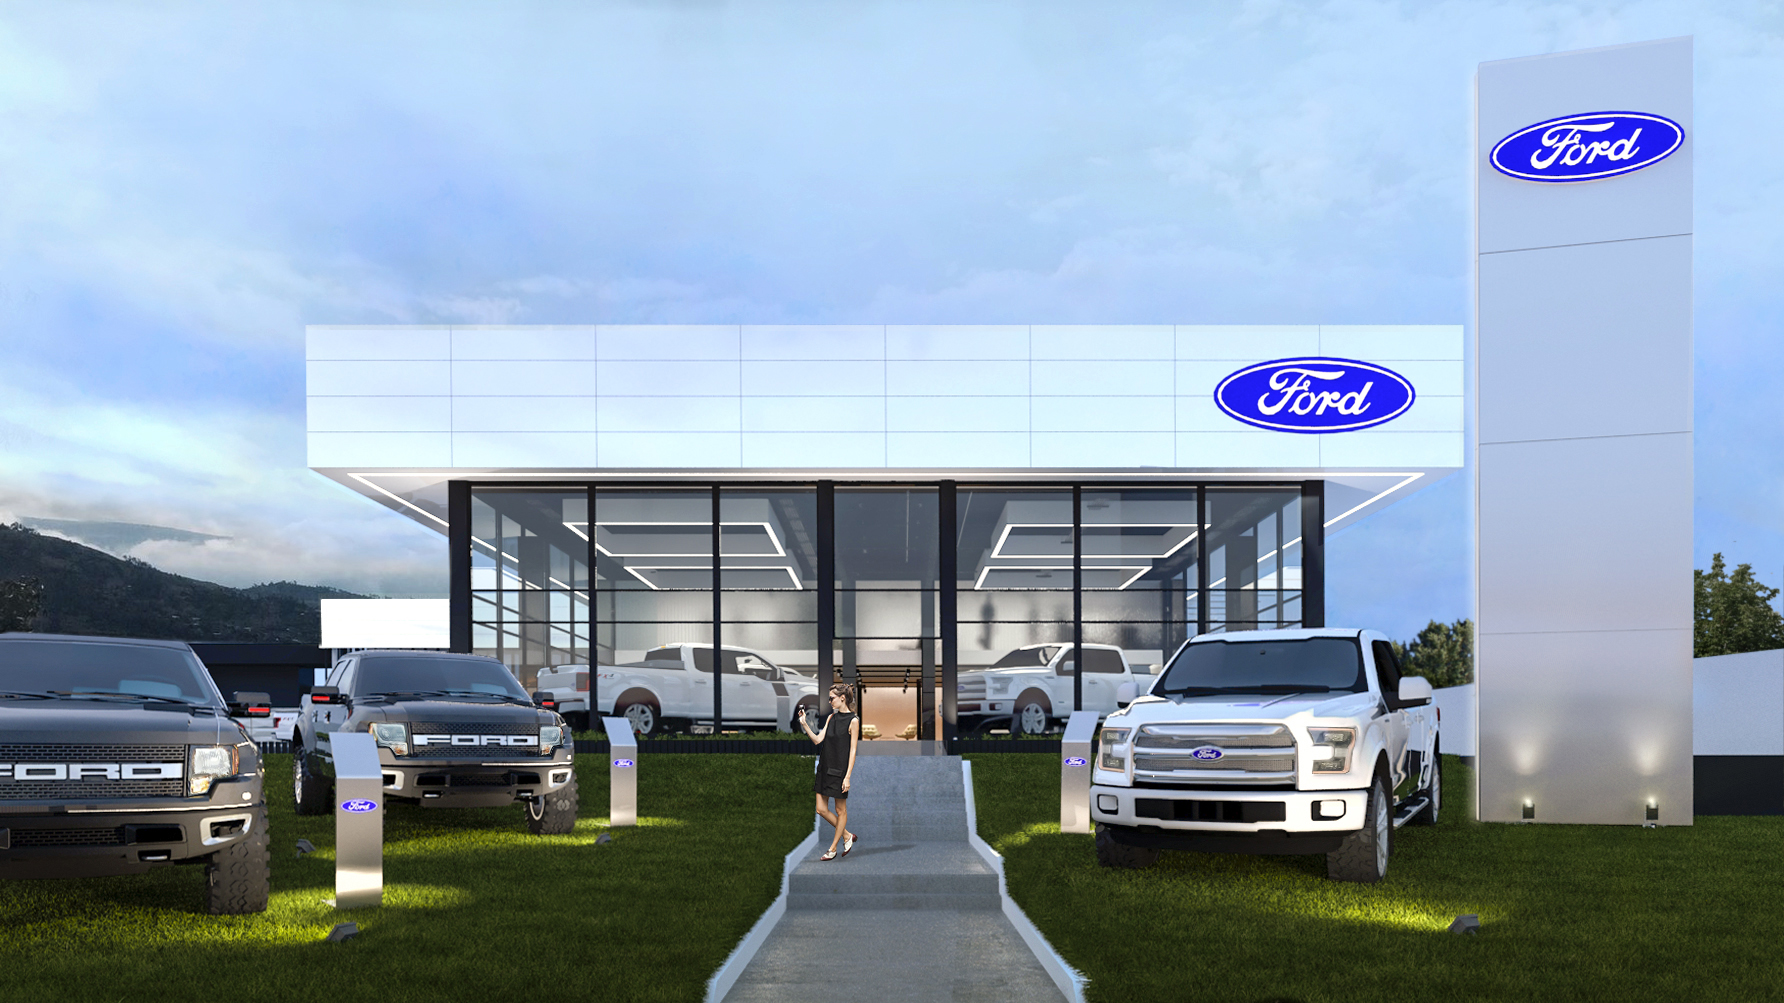 ford_ext01.jpg